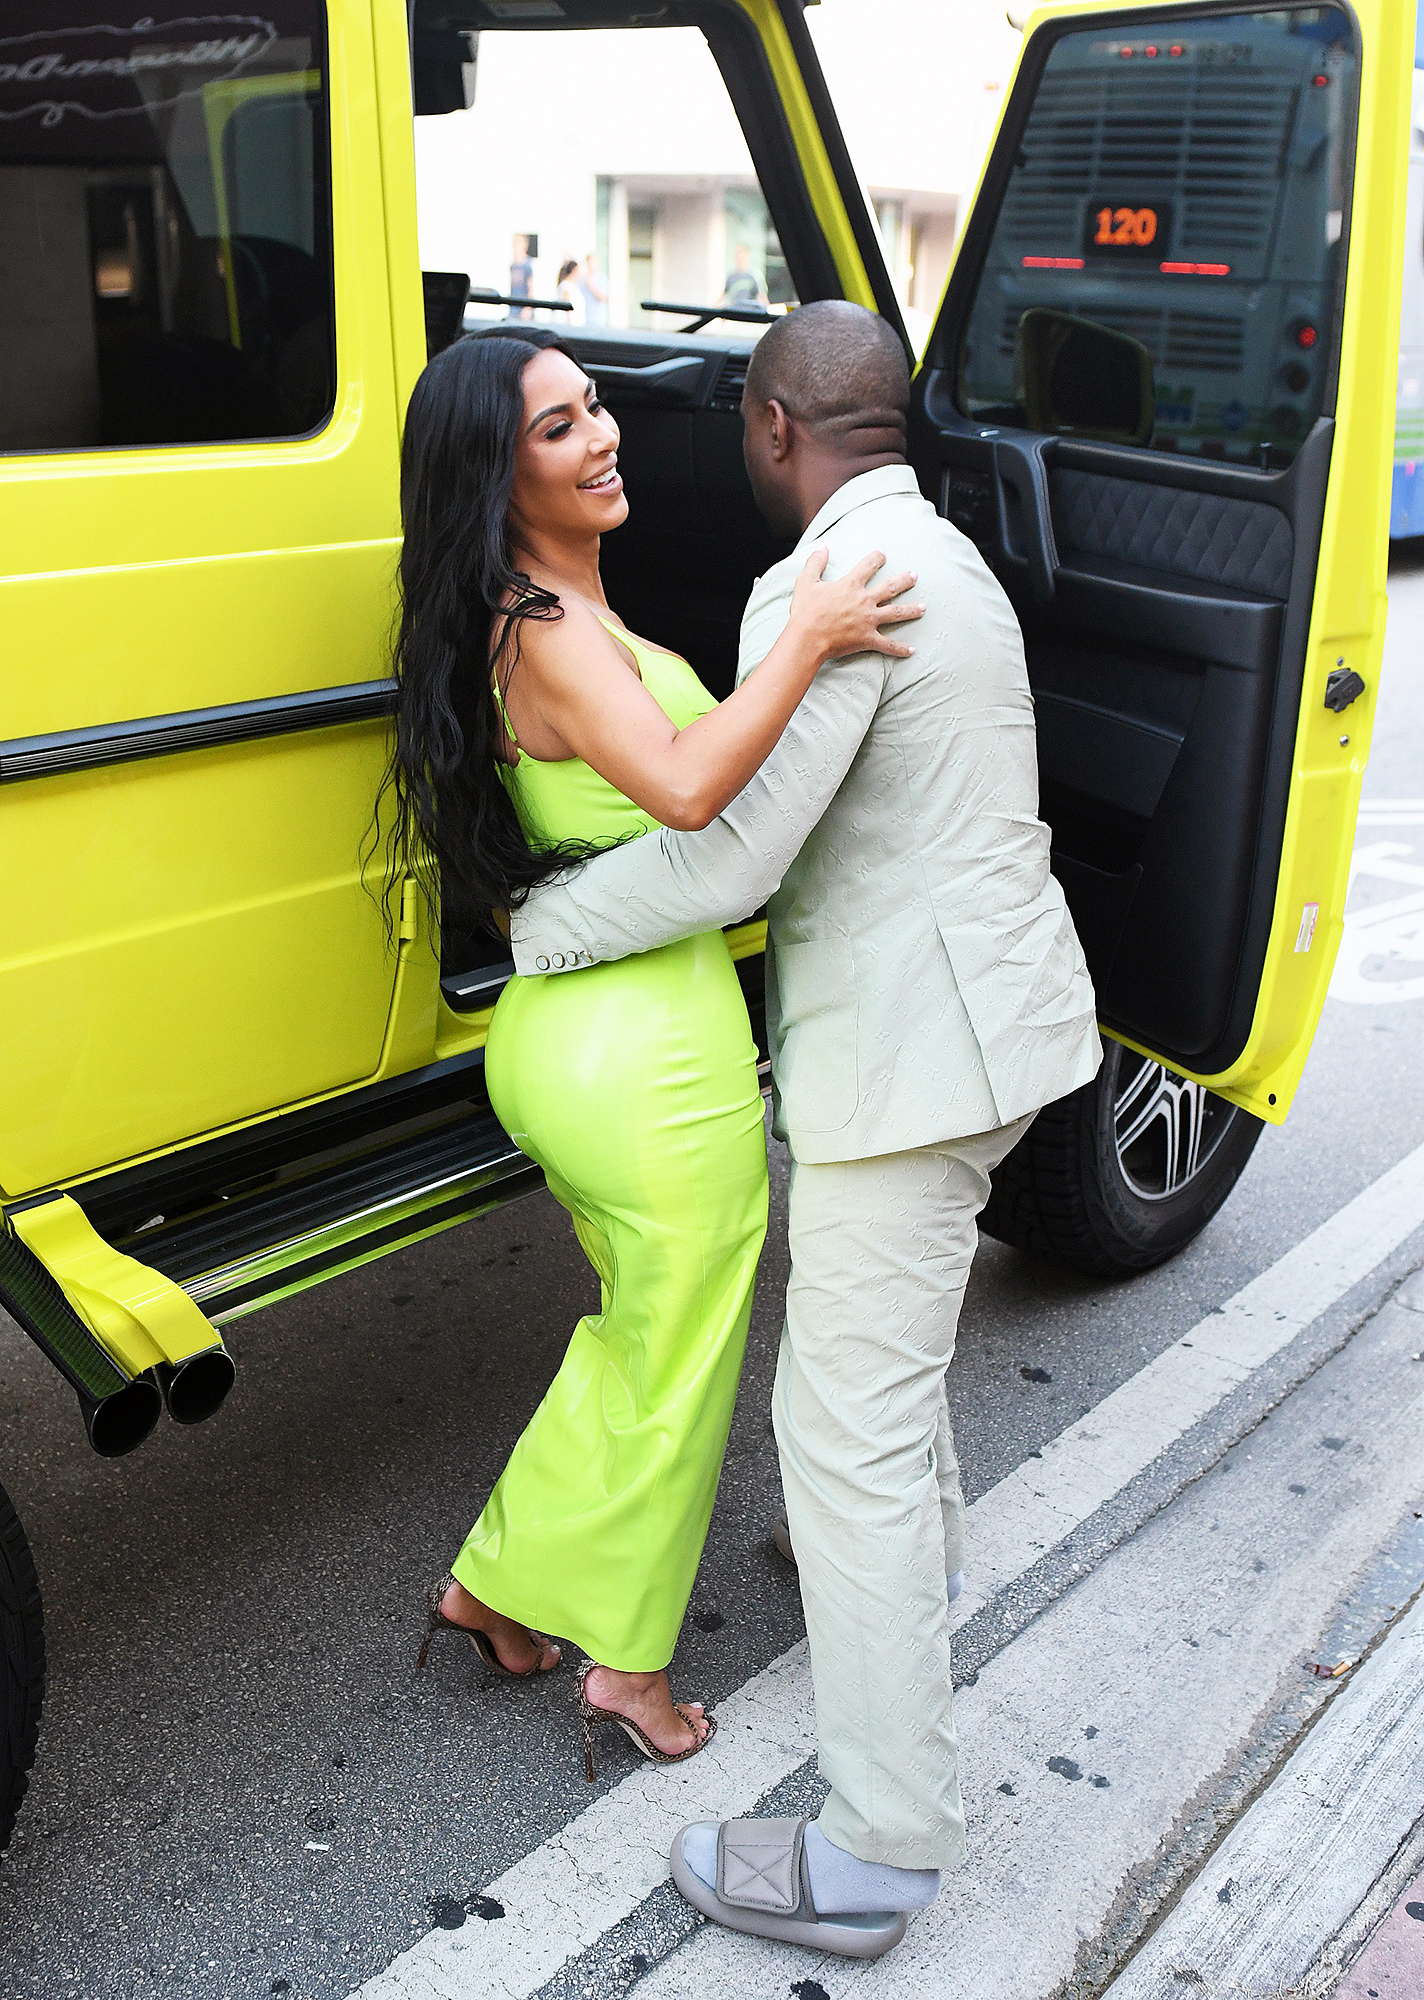 Kim Kardashian Kanye West 2 Chainz Wedding Ice Cream Date - The musician set his wife down gently as she beamed up at him.